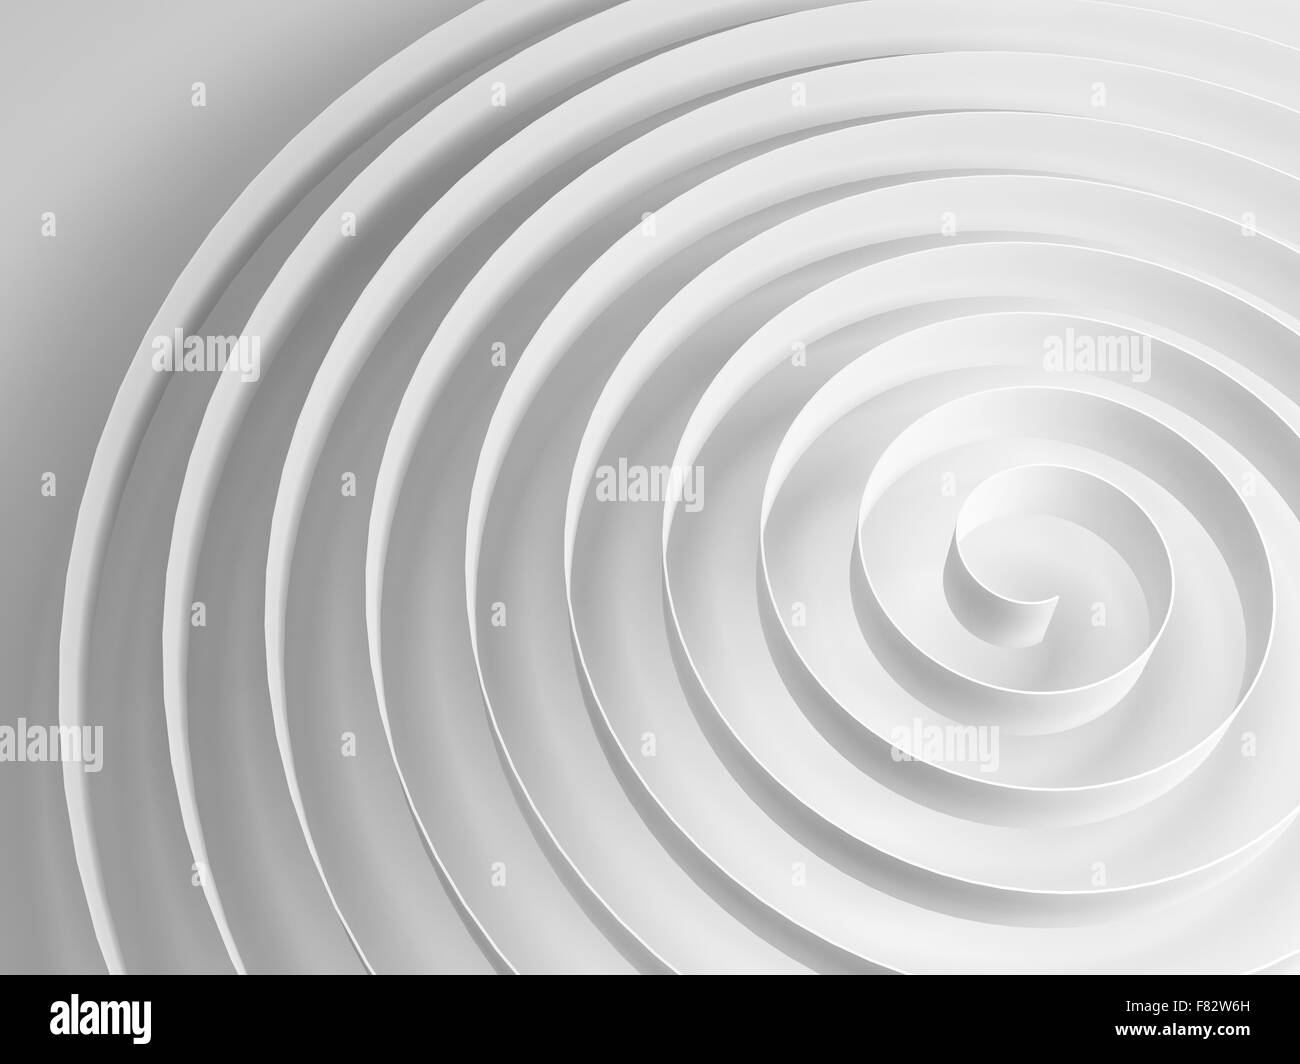 White 3d spiral with soft gray shadow, abstract digital illustration, background pattern - Stock Image